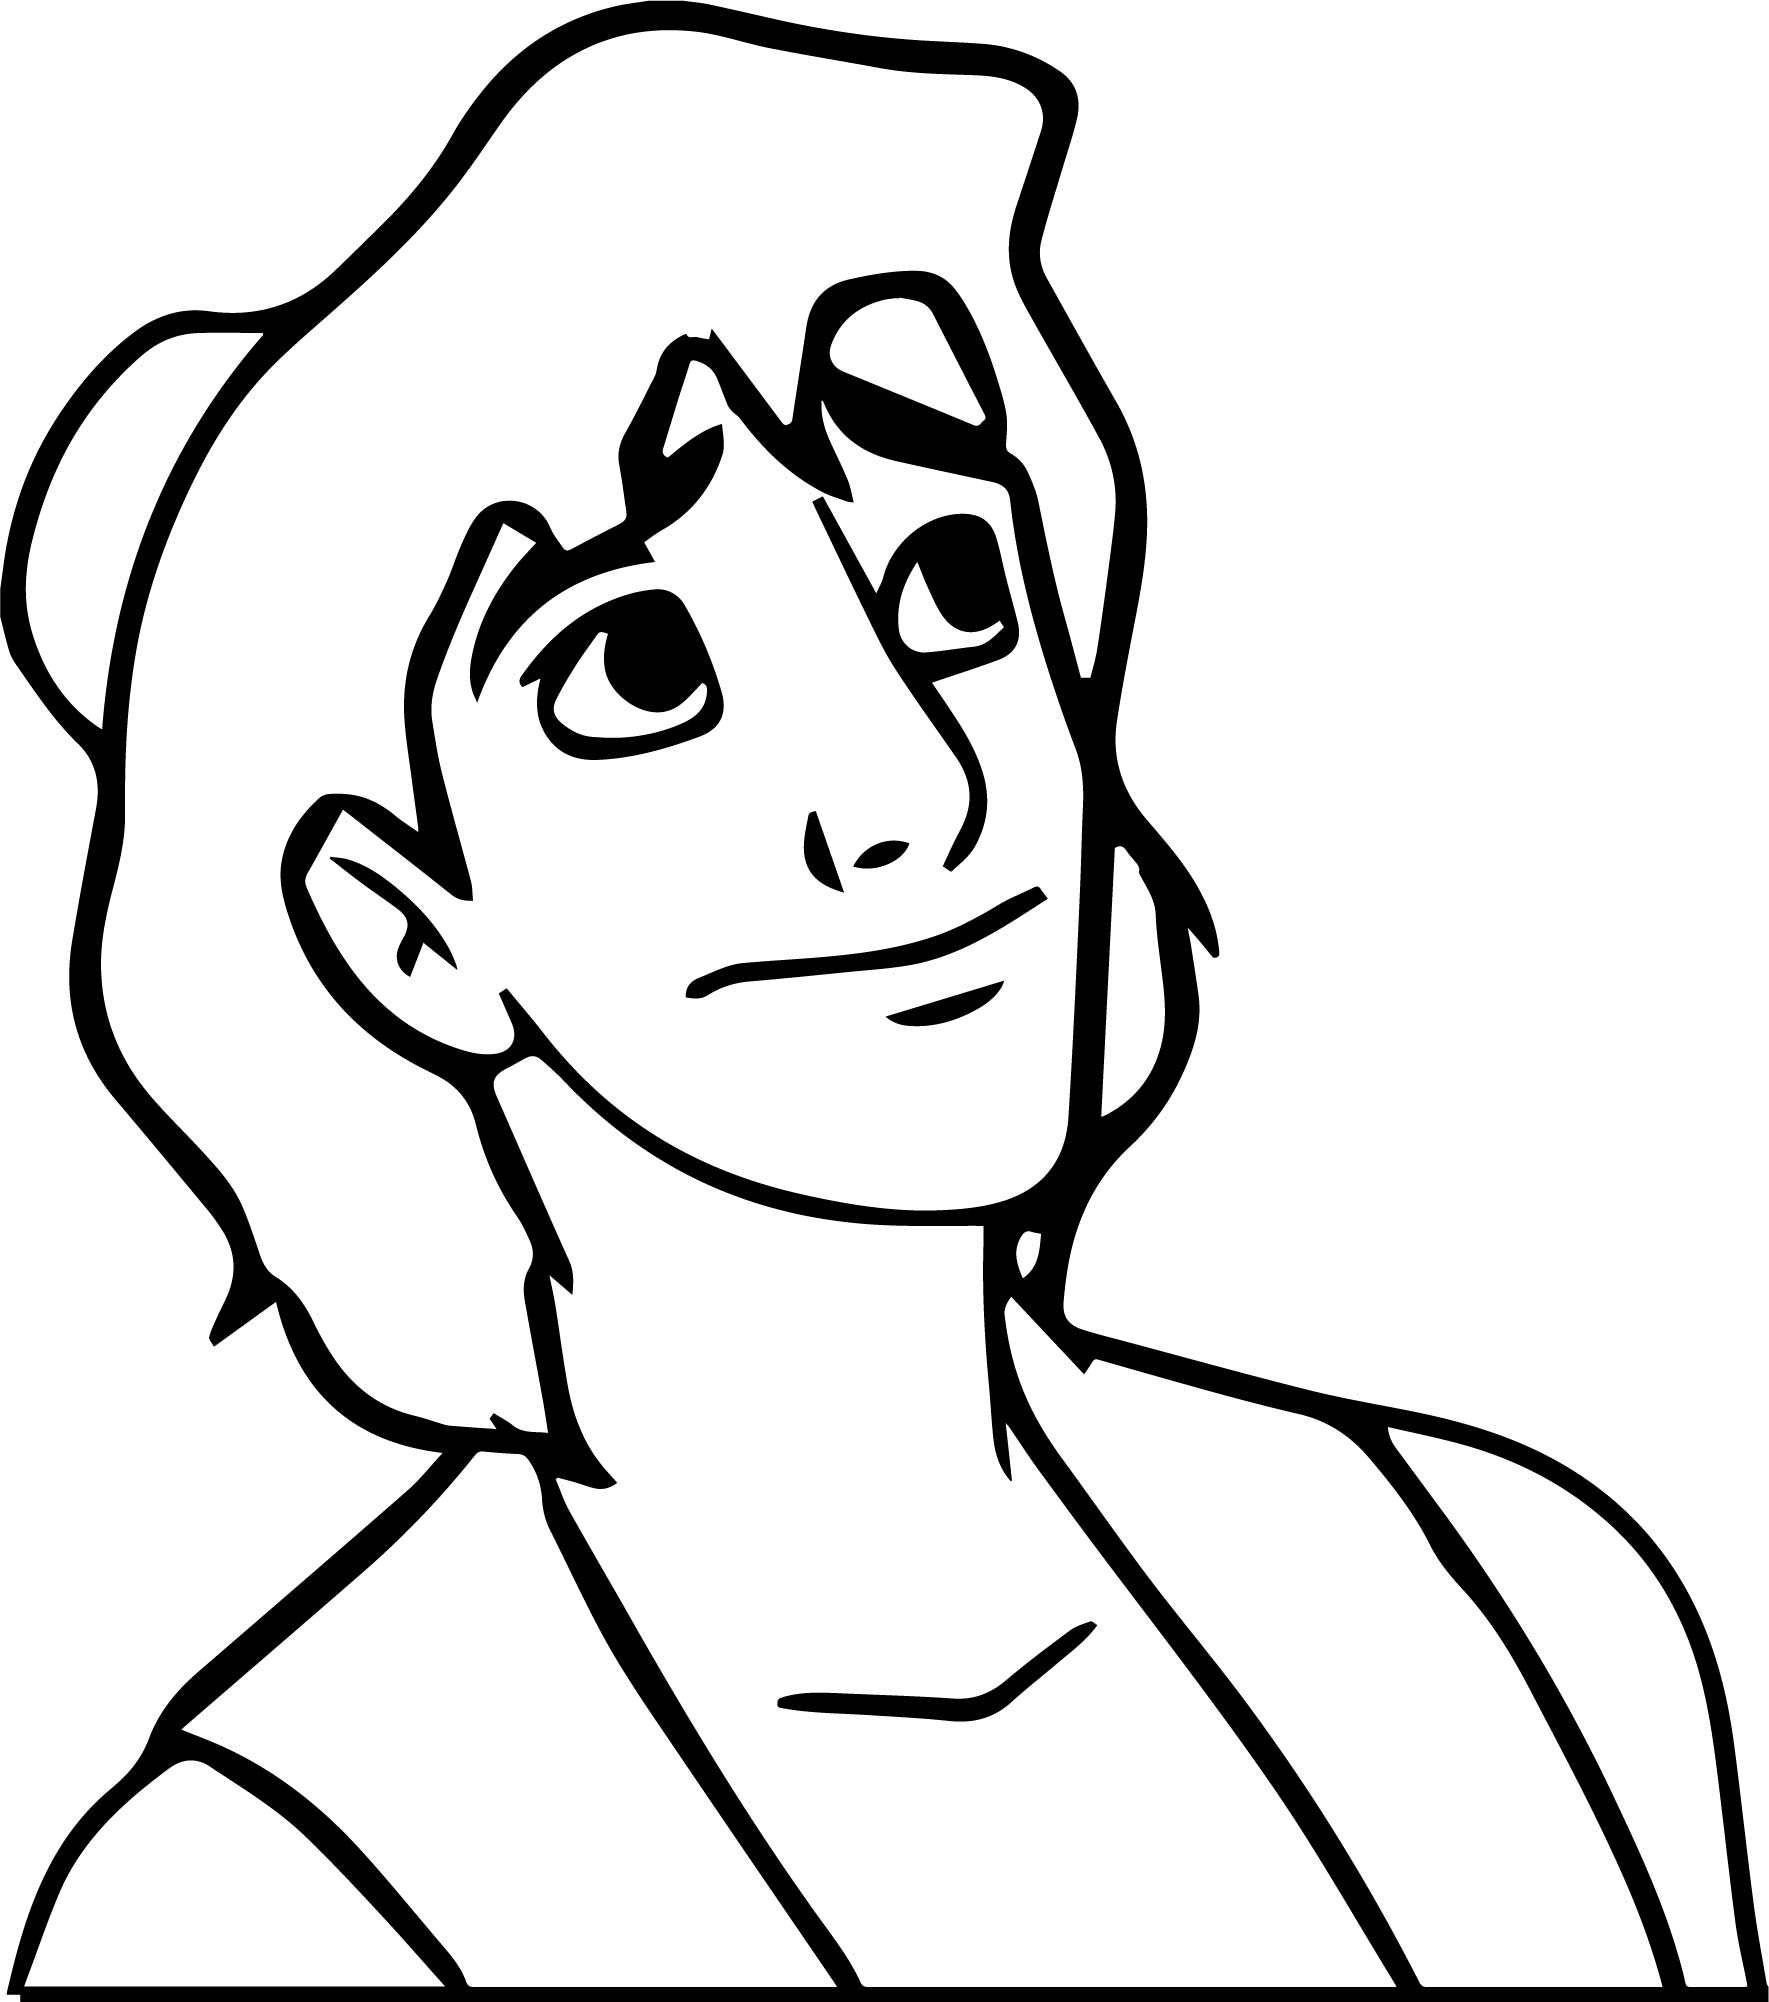 Cool Walt Disney Prince Aladdin Walt Disney Characters Coloring Page